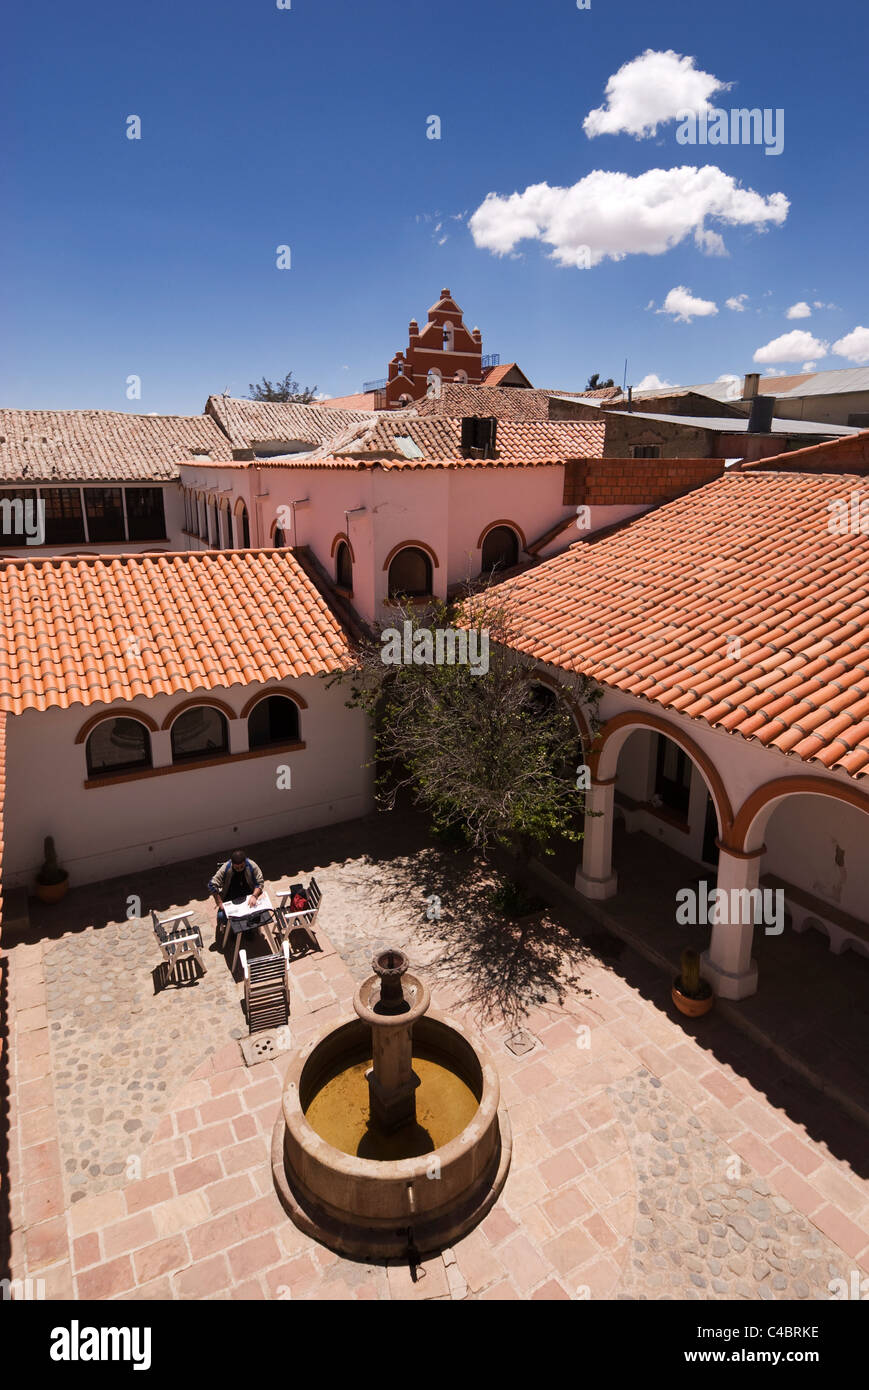 Potosi, Hostal Colonial, courtyard from above - Stock Image